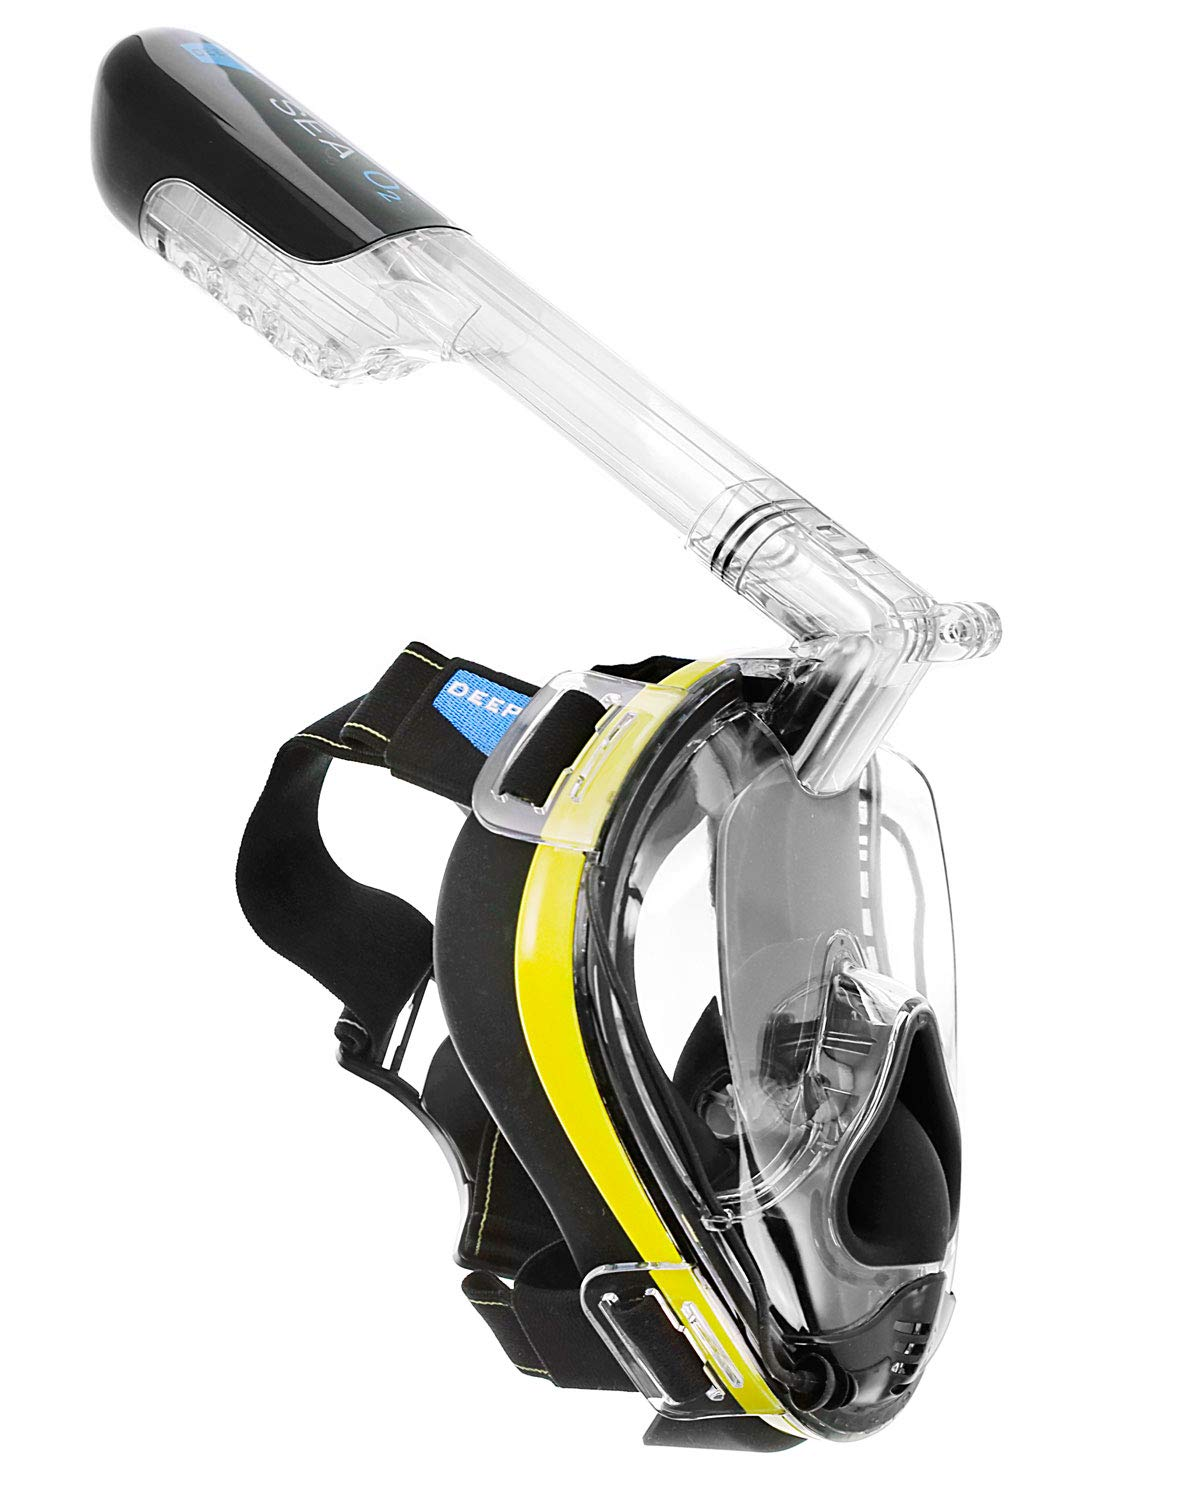 Deep Sea O2 | Only Full Face Snorkel Mask Designed to Protect Against Dangerous CO2 Build-Up | Panoramic View | Soft Nose for Diving | Anti-Fog | Camera Mount | Universal Size- Kids to Adult | Yellow by Deep